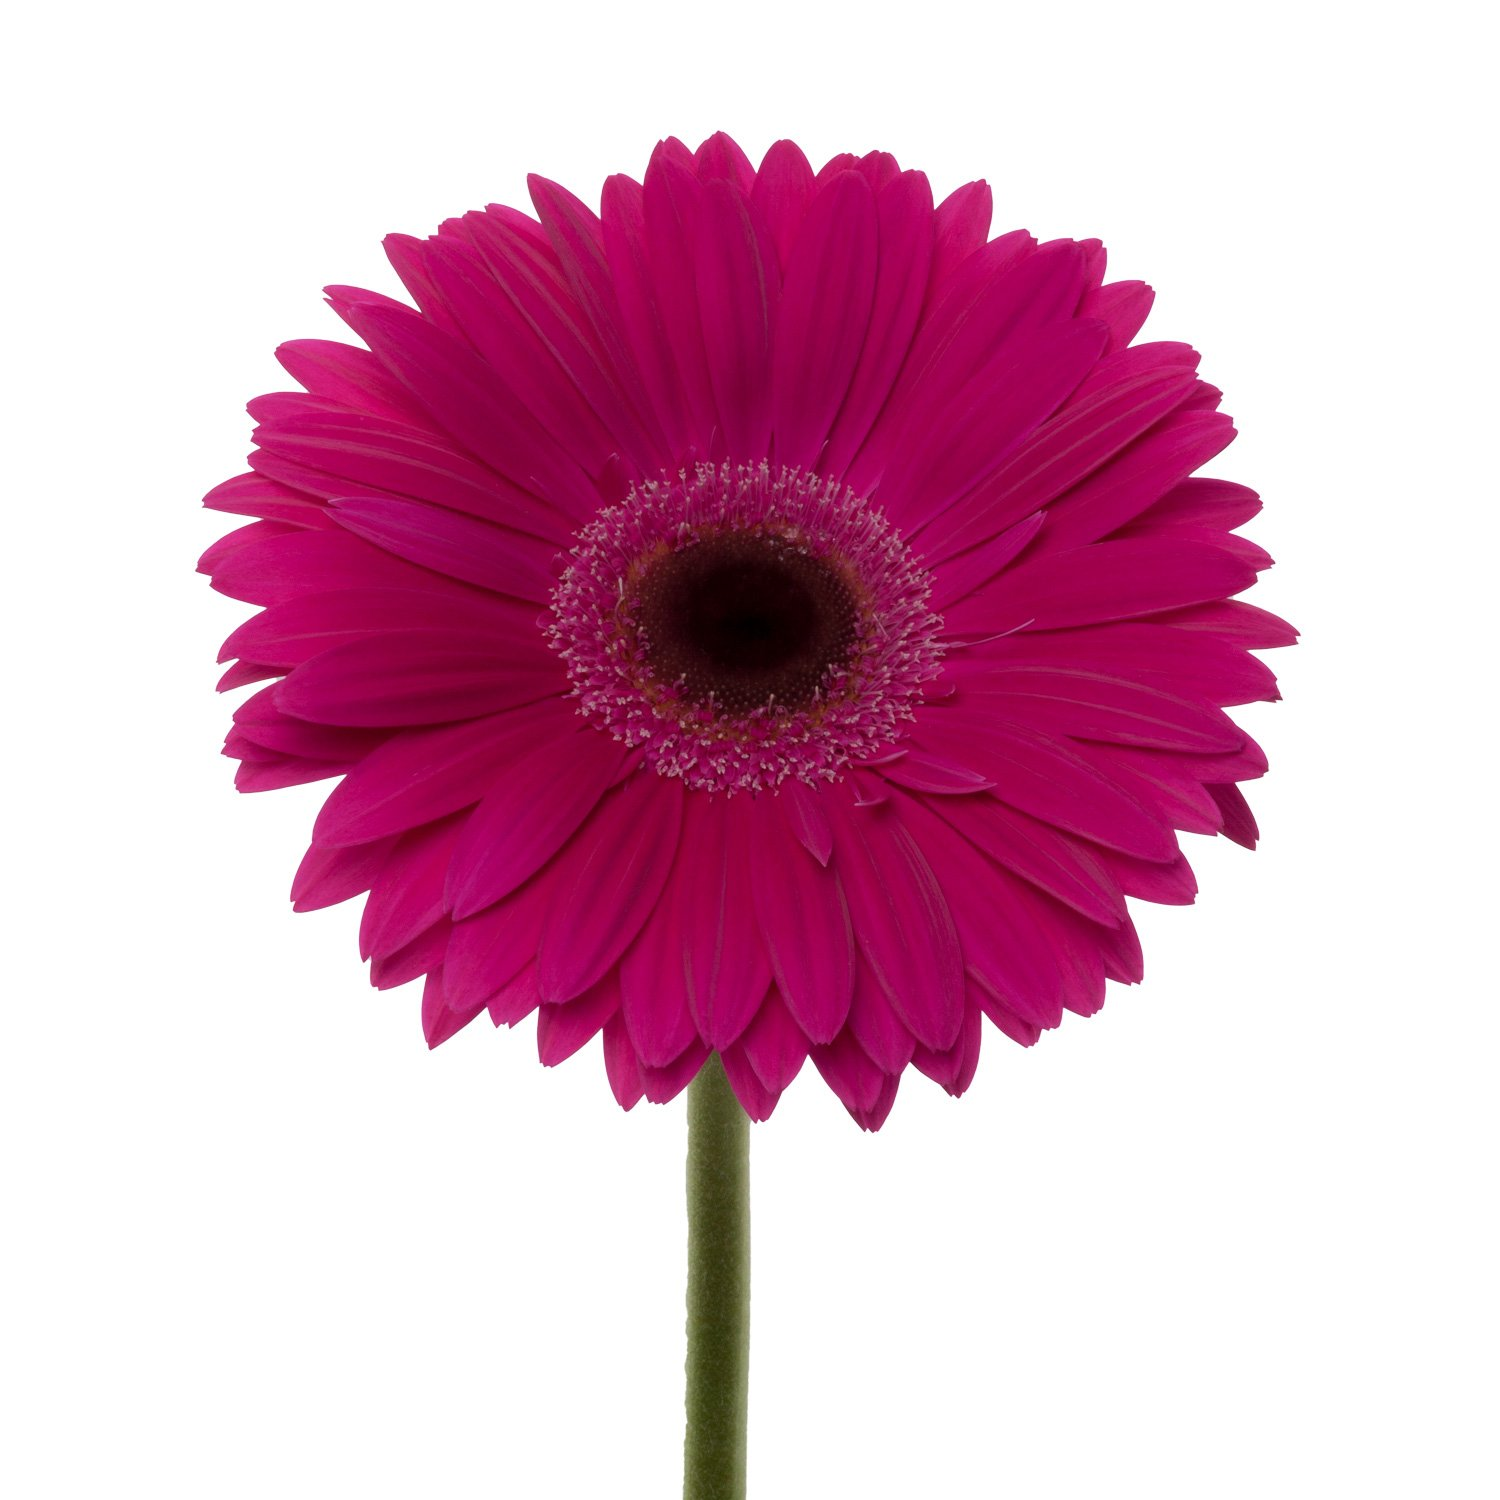 Gerbera Dark Center | Dark Pink - 80 Stem Count by Flower Farm Shop